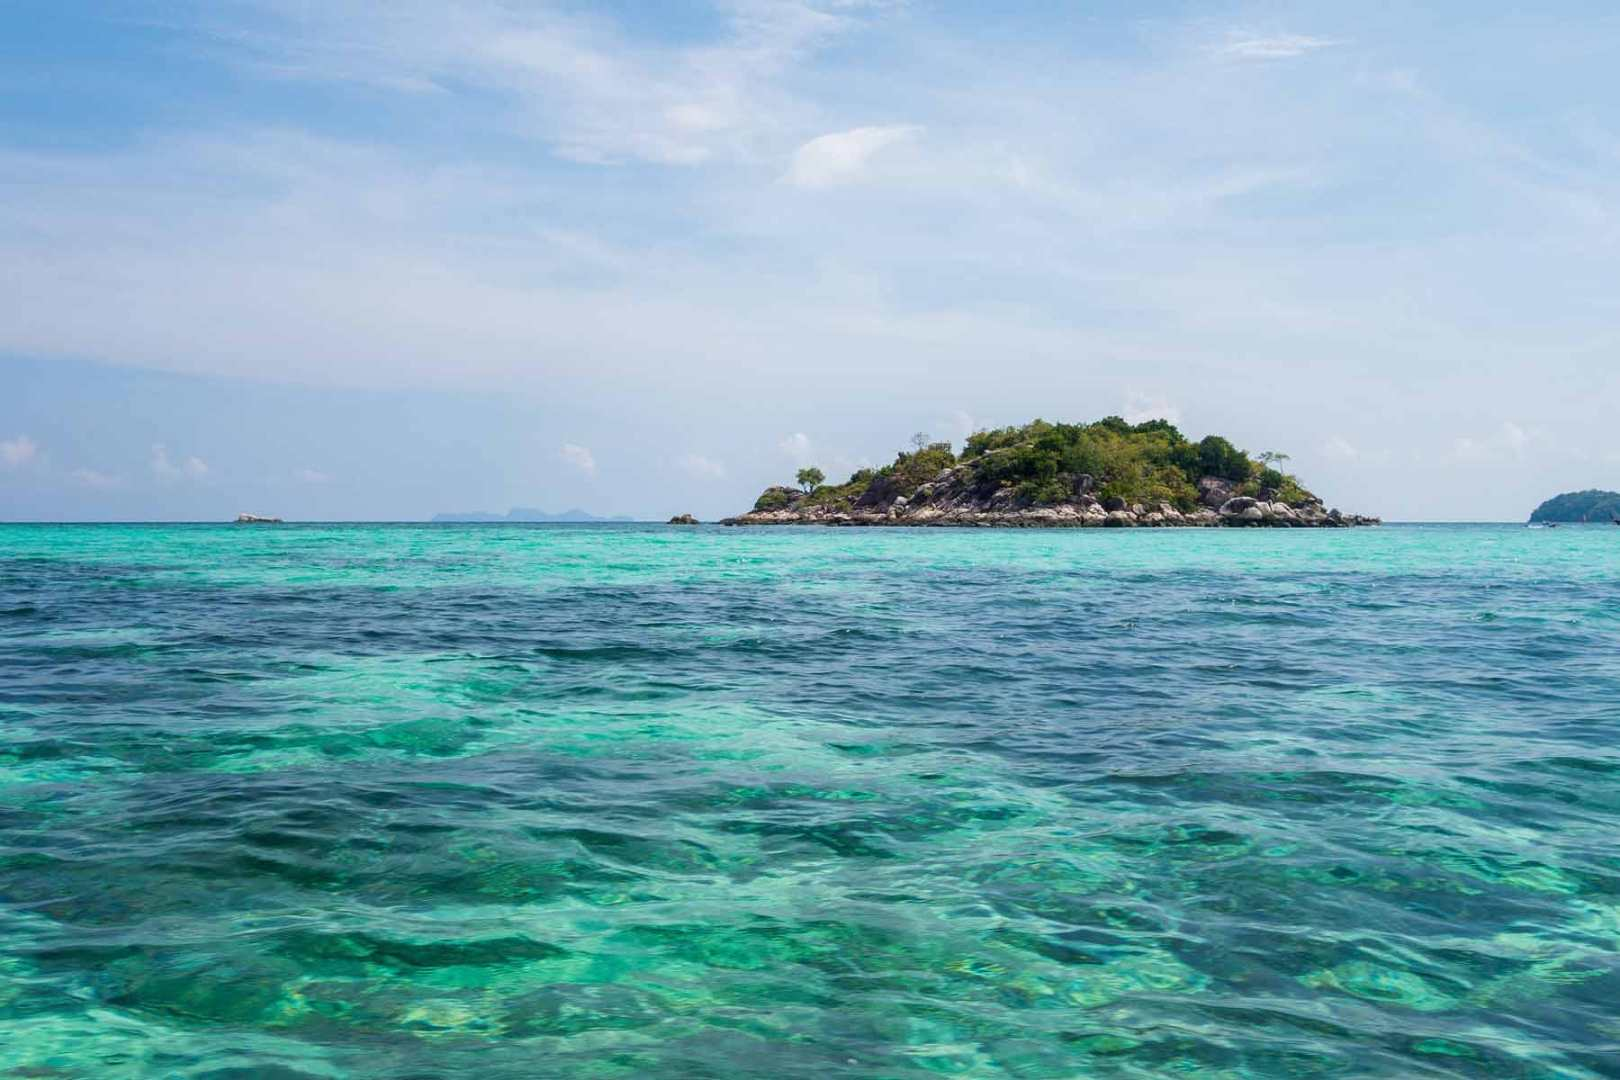 Koh Lipe beach, a beautiful getaway